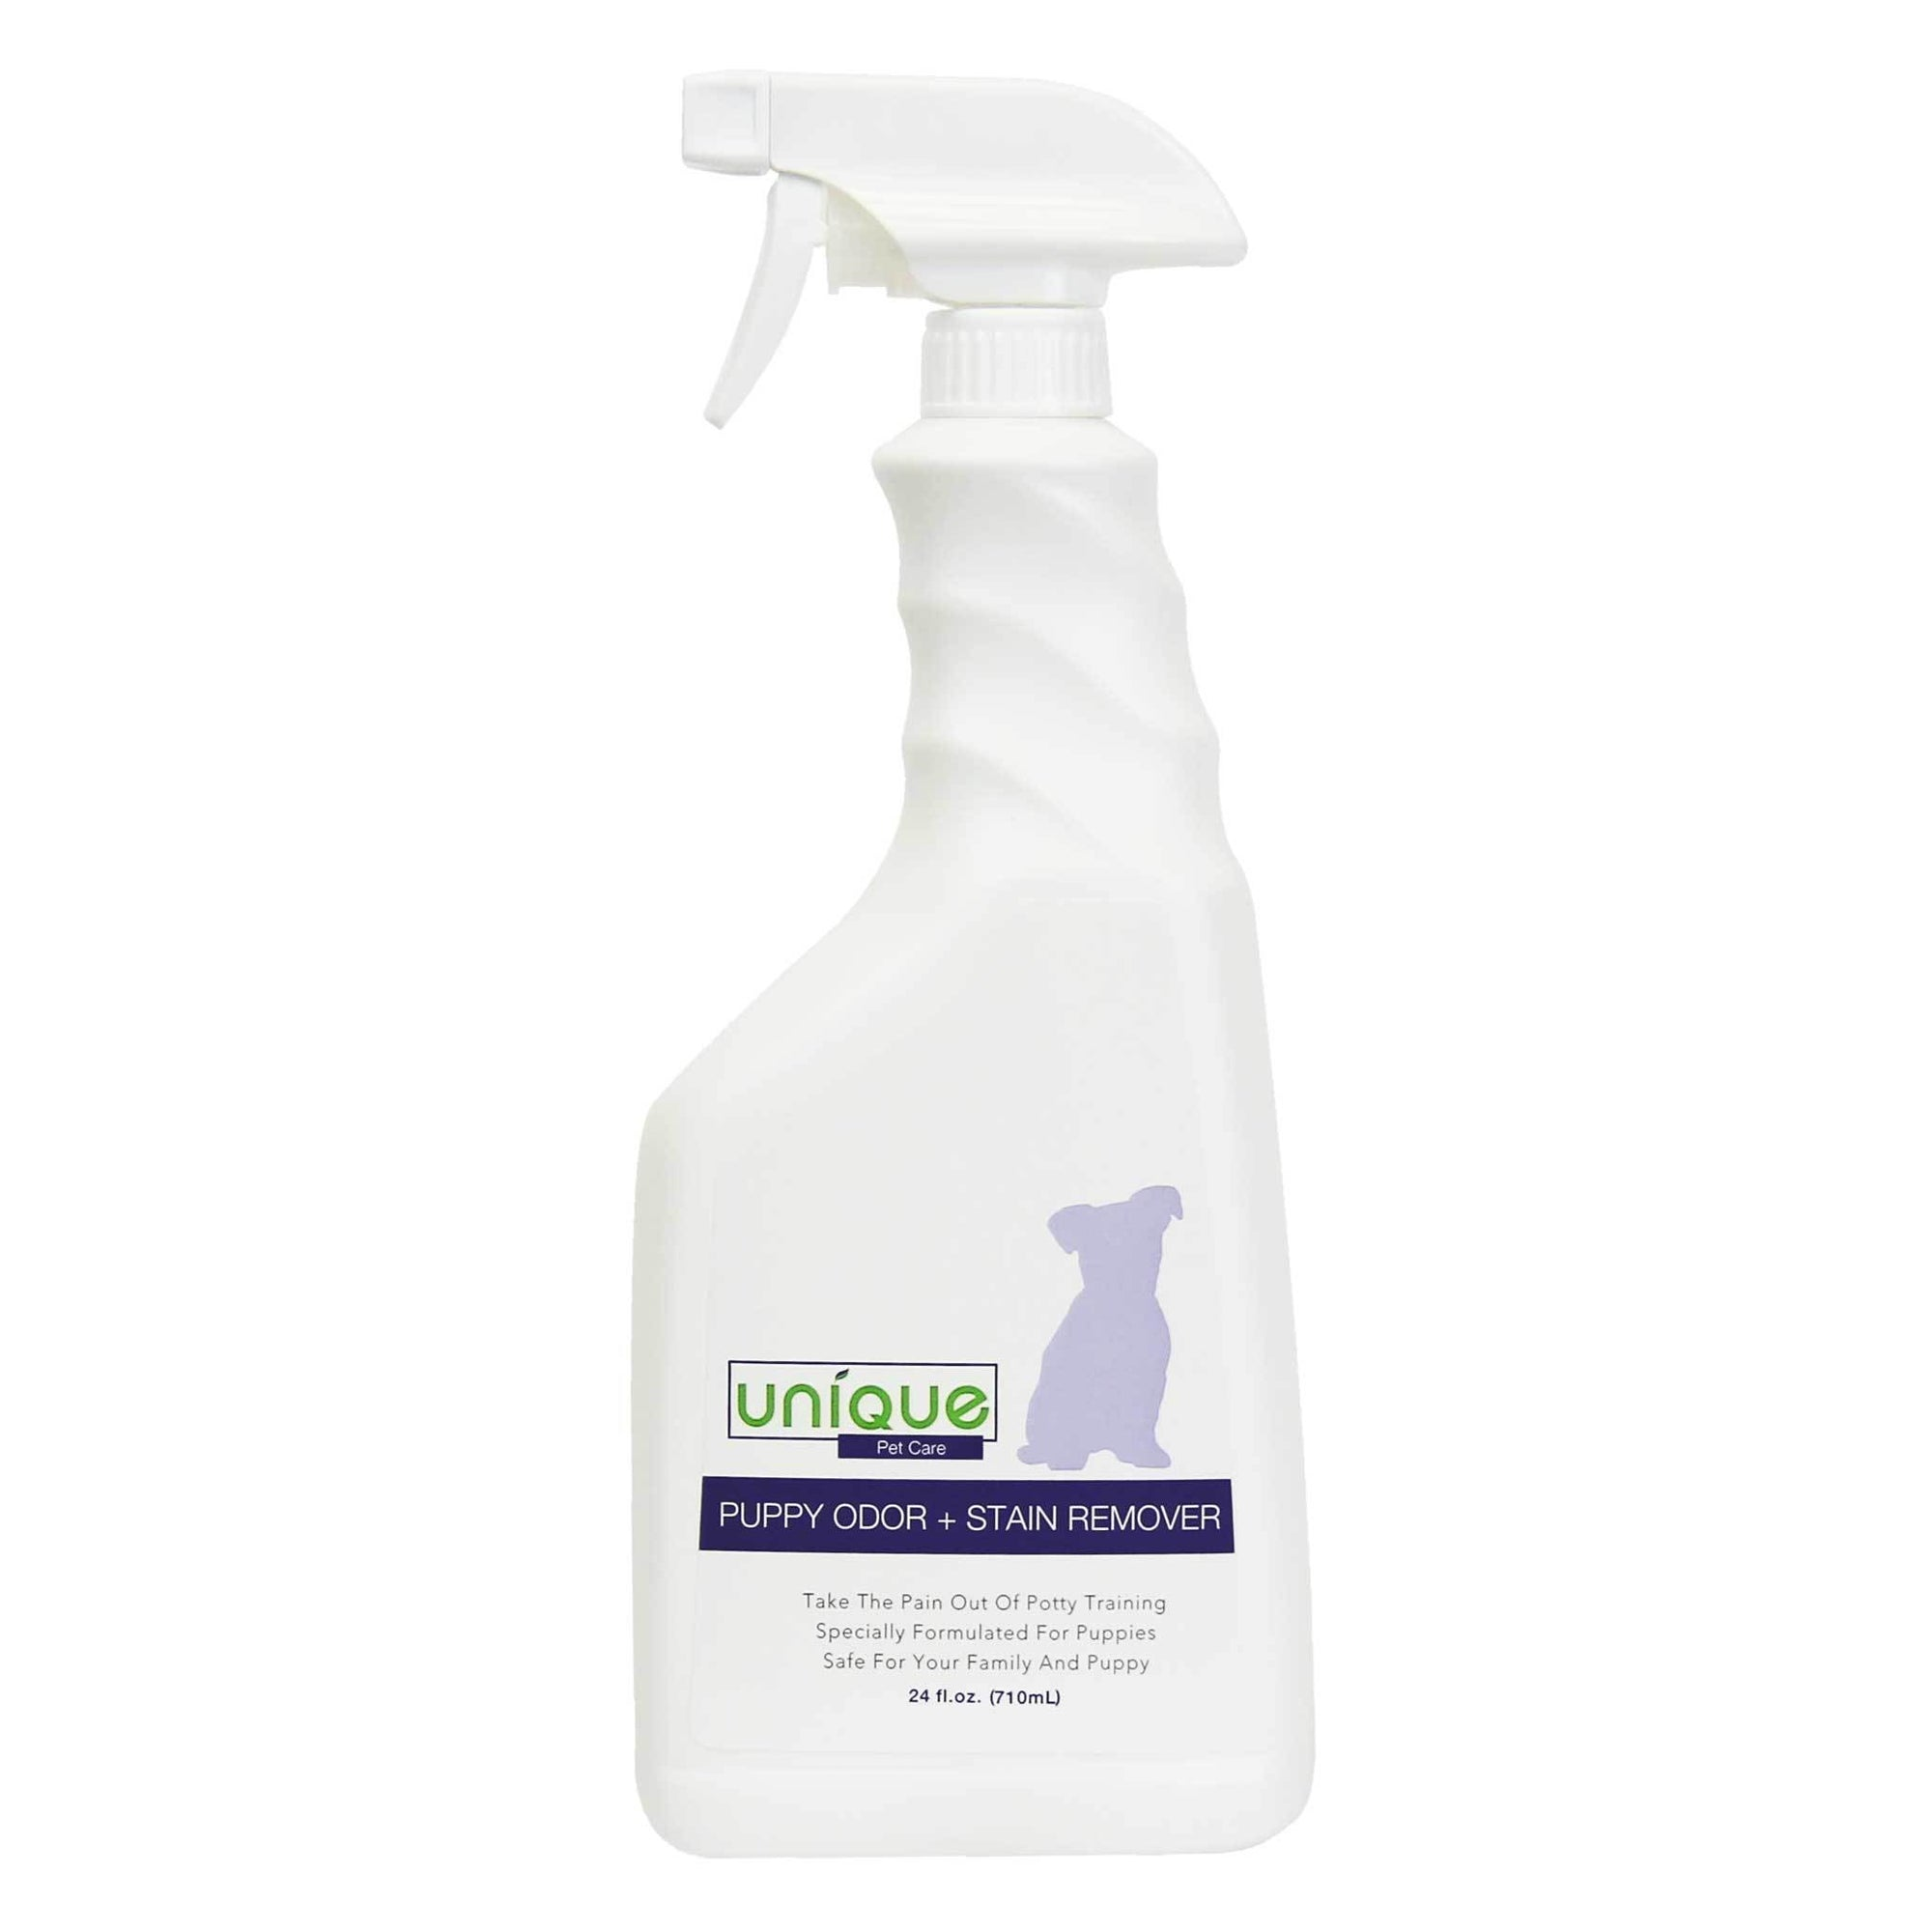 Puppy Stain and odor remover acts fast to remove tough stains. Unique Pet Care